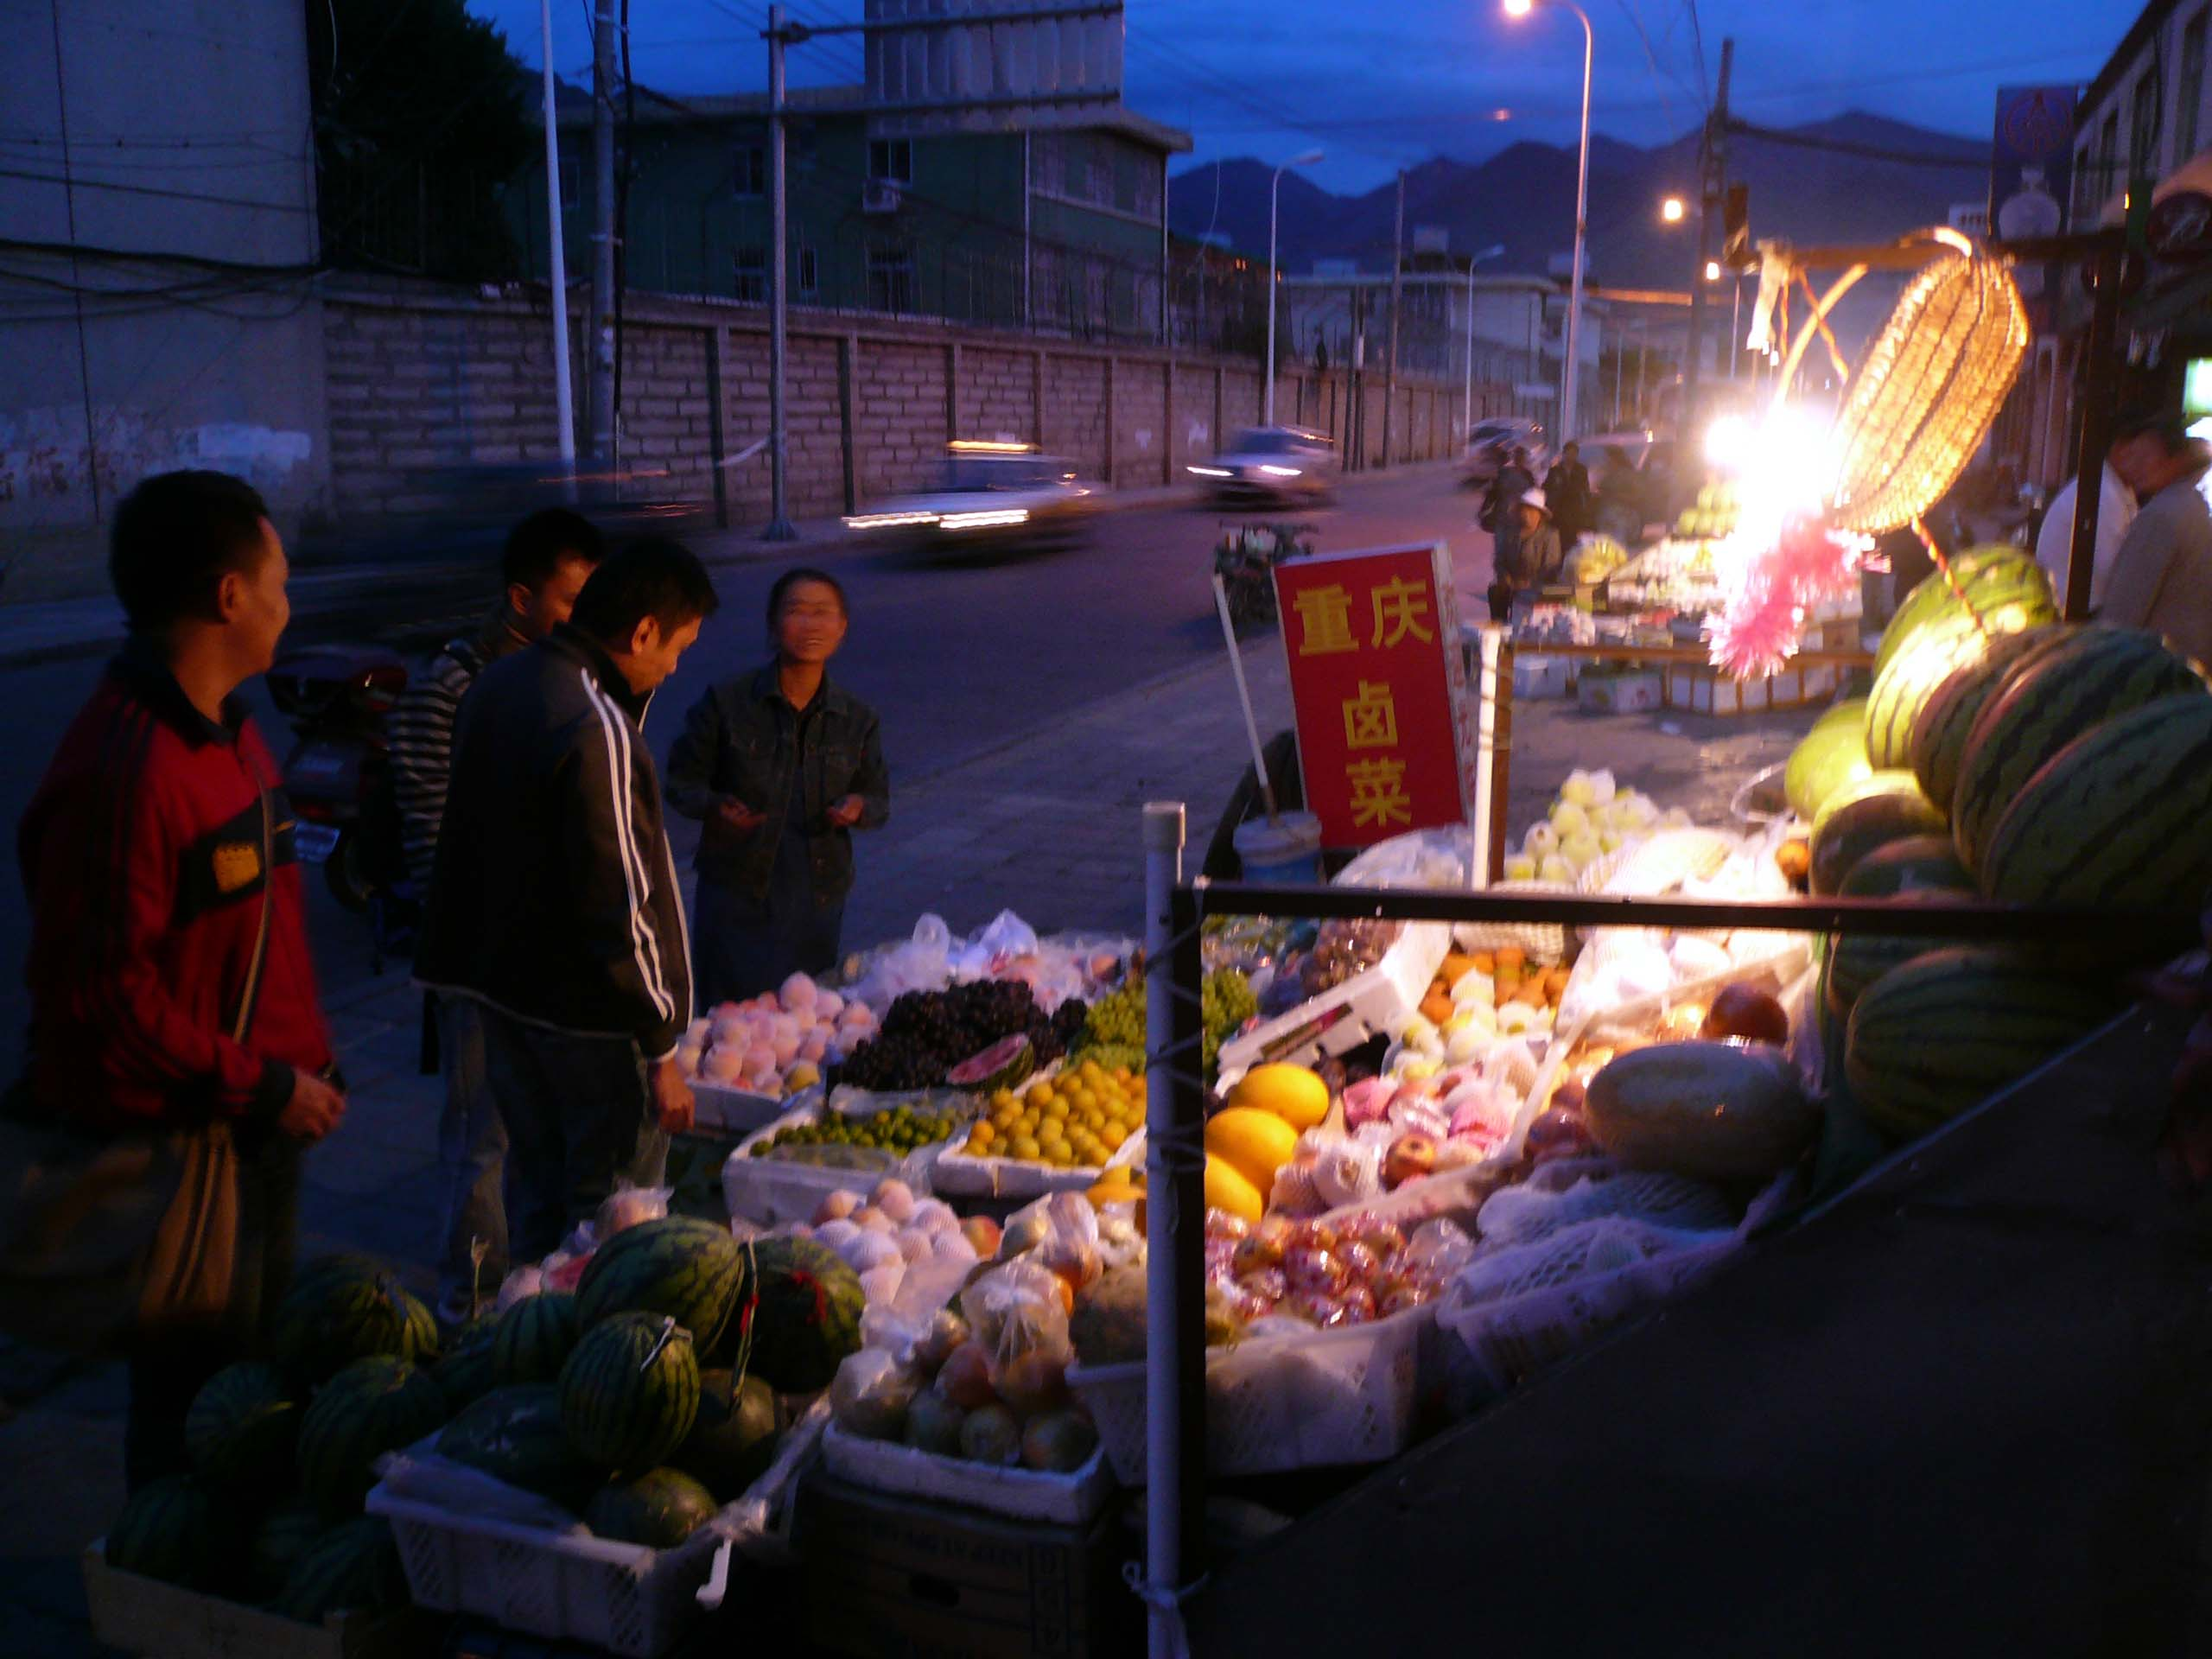 Purchase of local fruits for supper